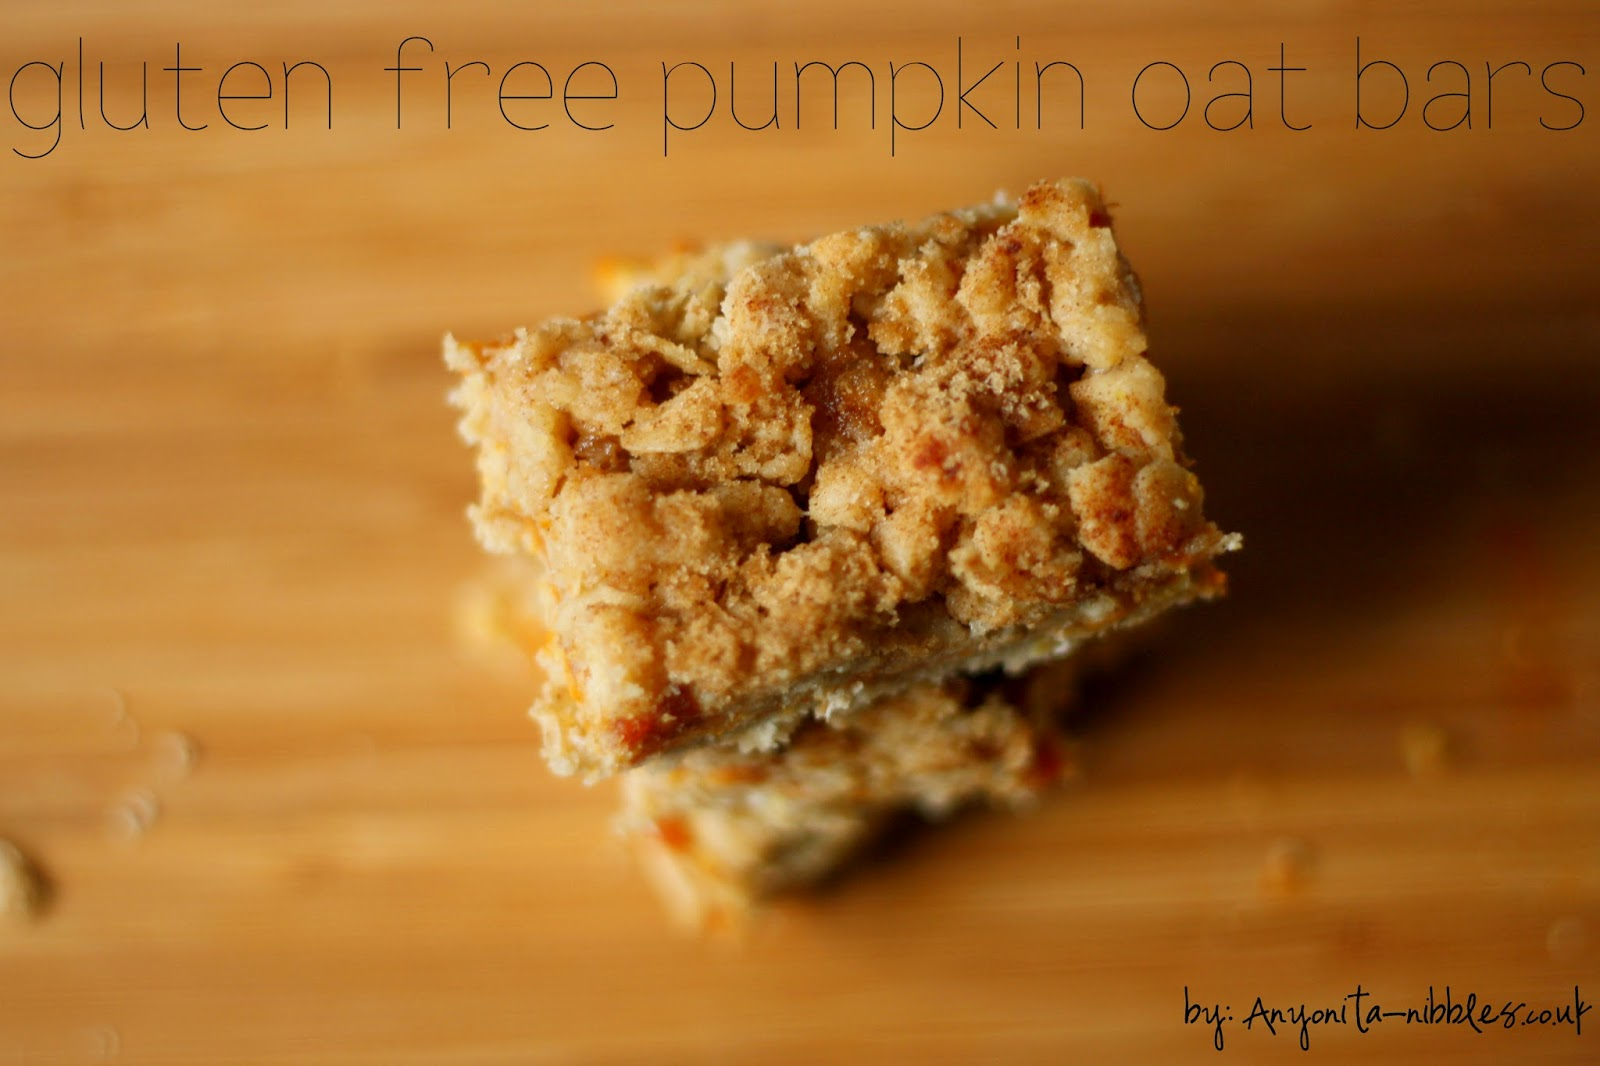 gluten free pumpkin oat bars from anyonita-nibbles.co.uk